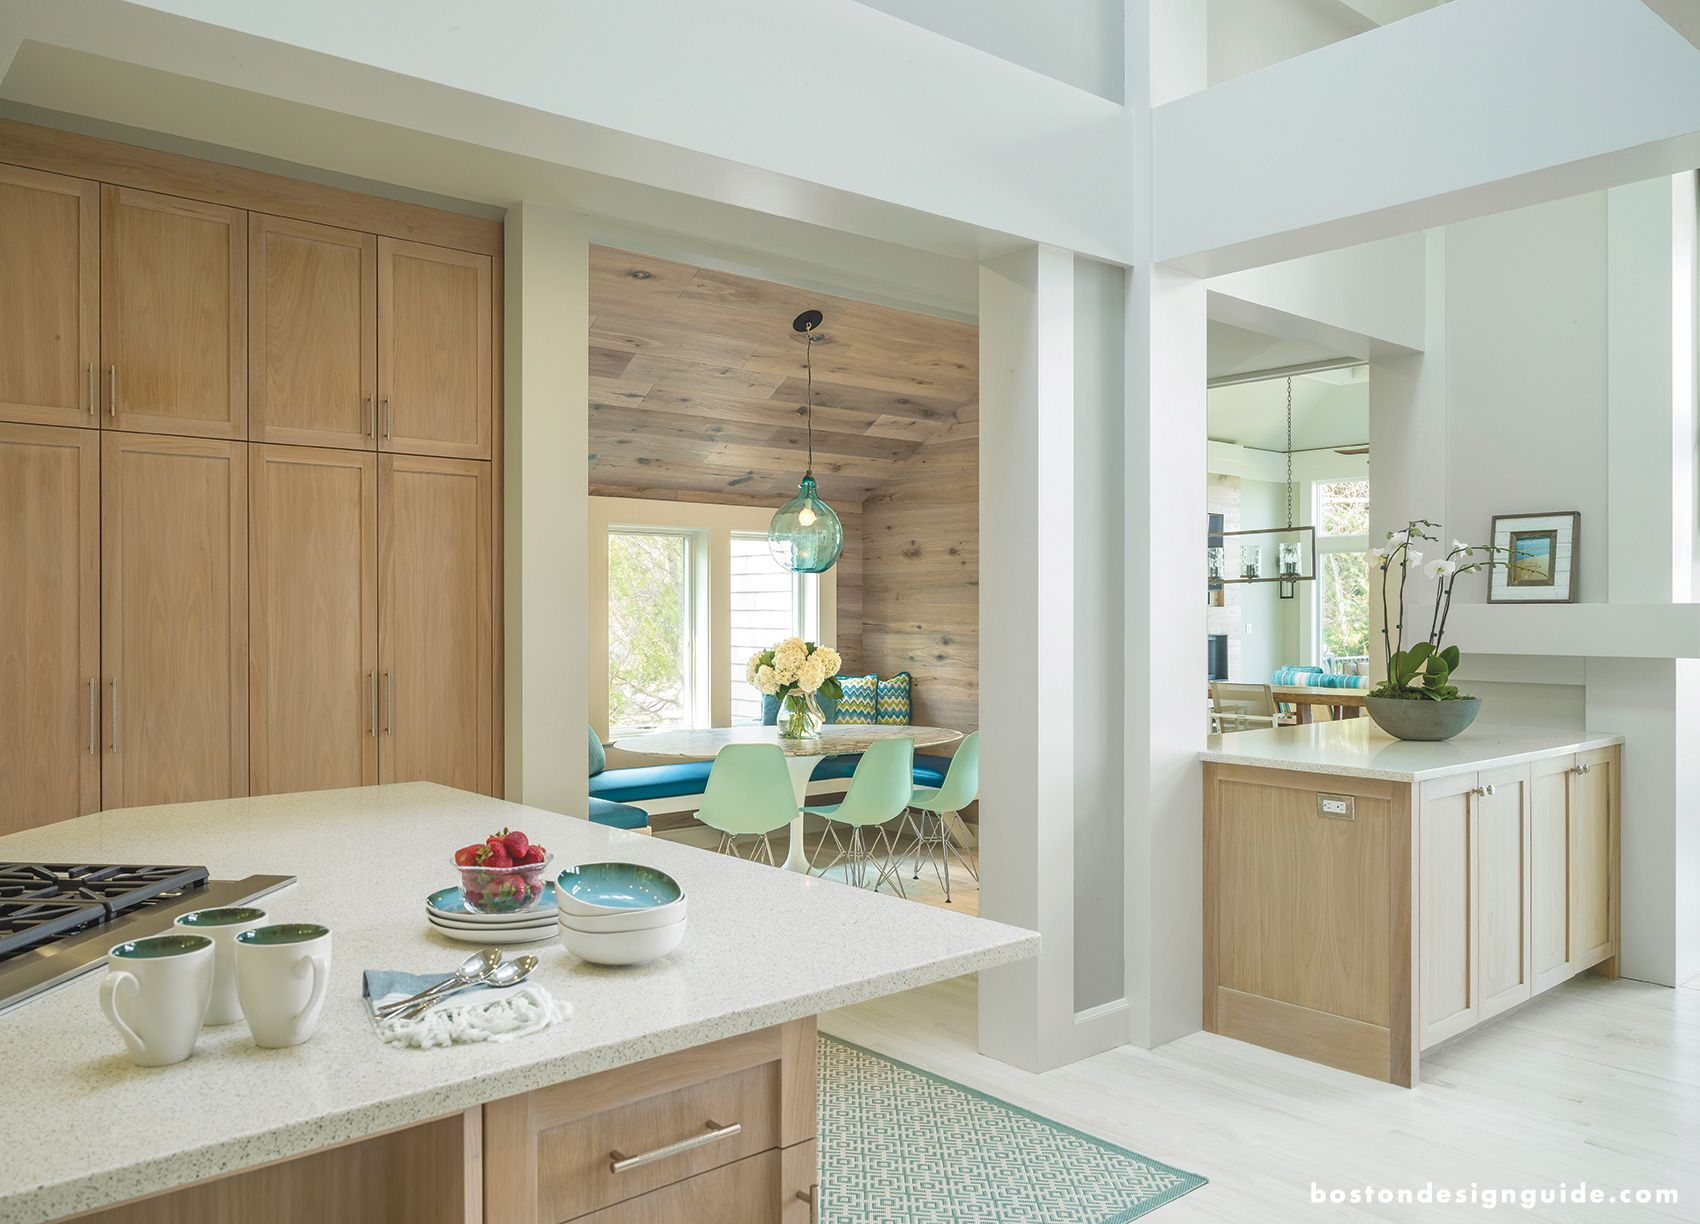 Light Wood Mint Accents Nautical Elements Custom Woodwork By Toby Leary Fine Woodworking With Images Oak Cabinets Built In Furniture Custom Kitchen Cabinets